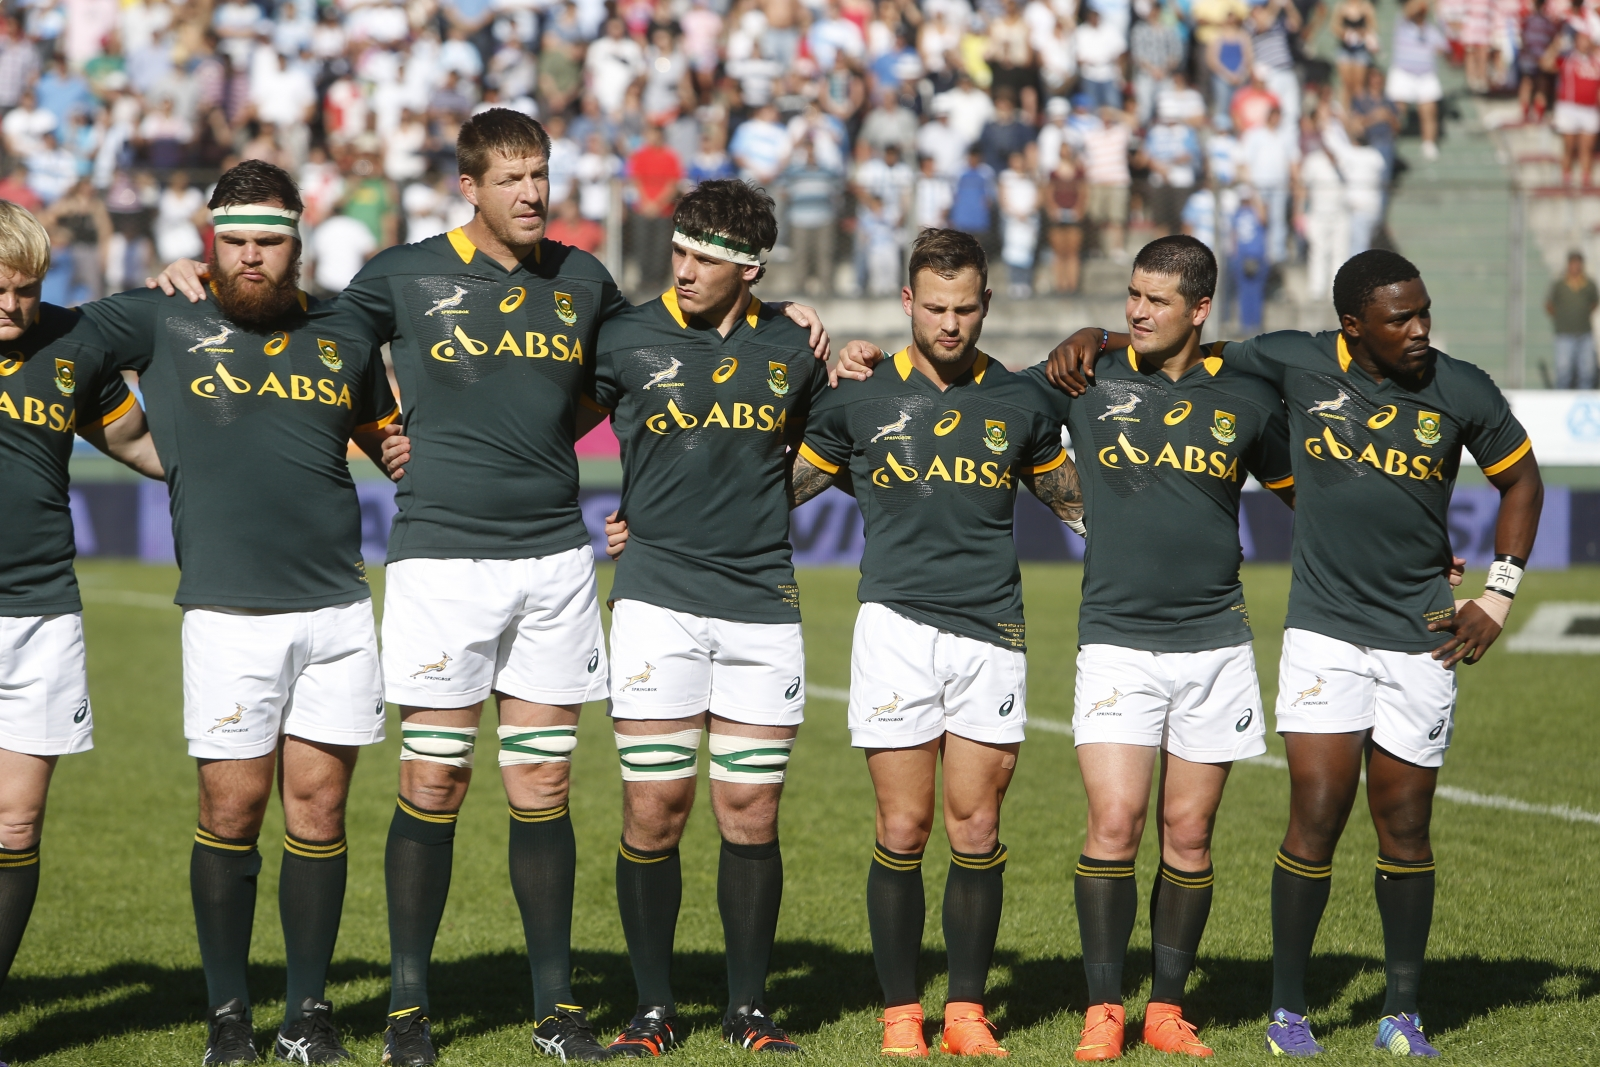 Springboks South Africa rugby team singing national anthem